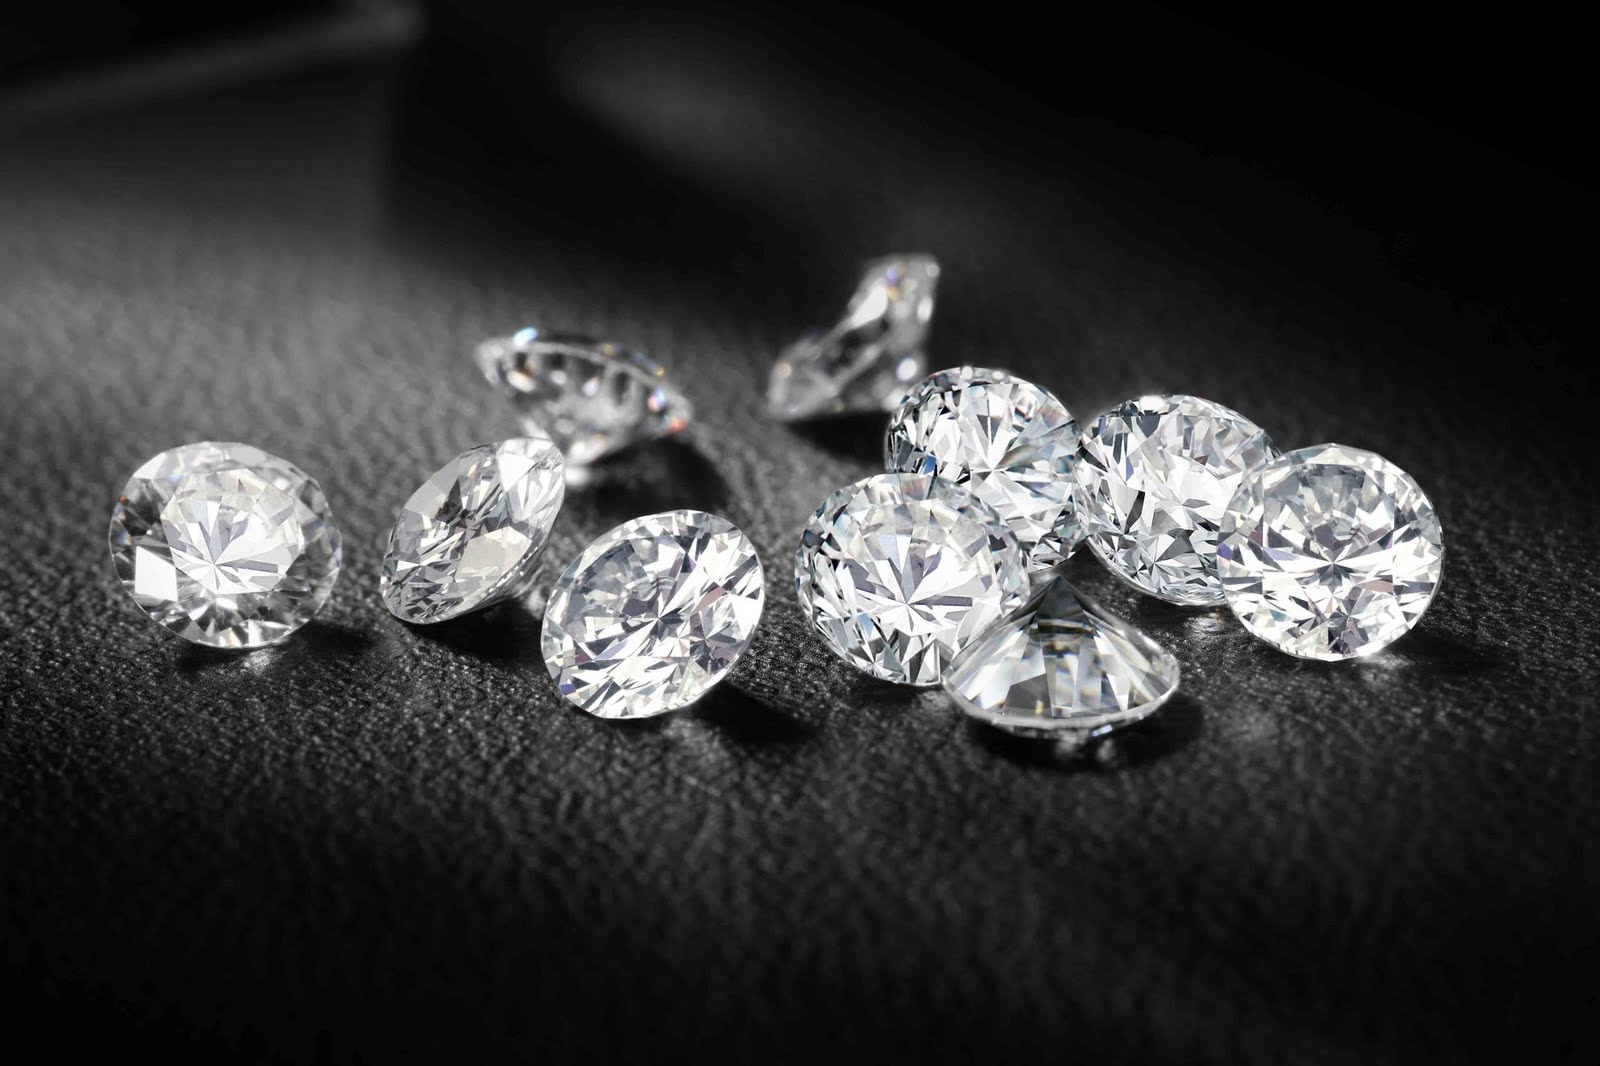 The Best Places to Buy Diamonds